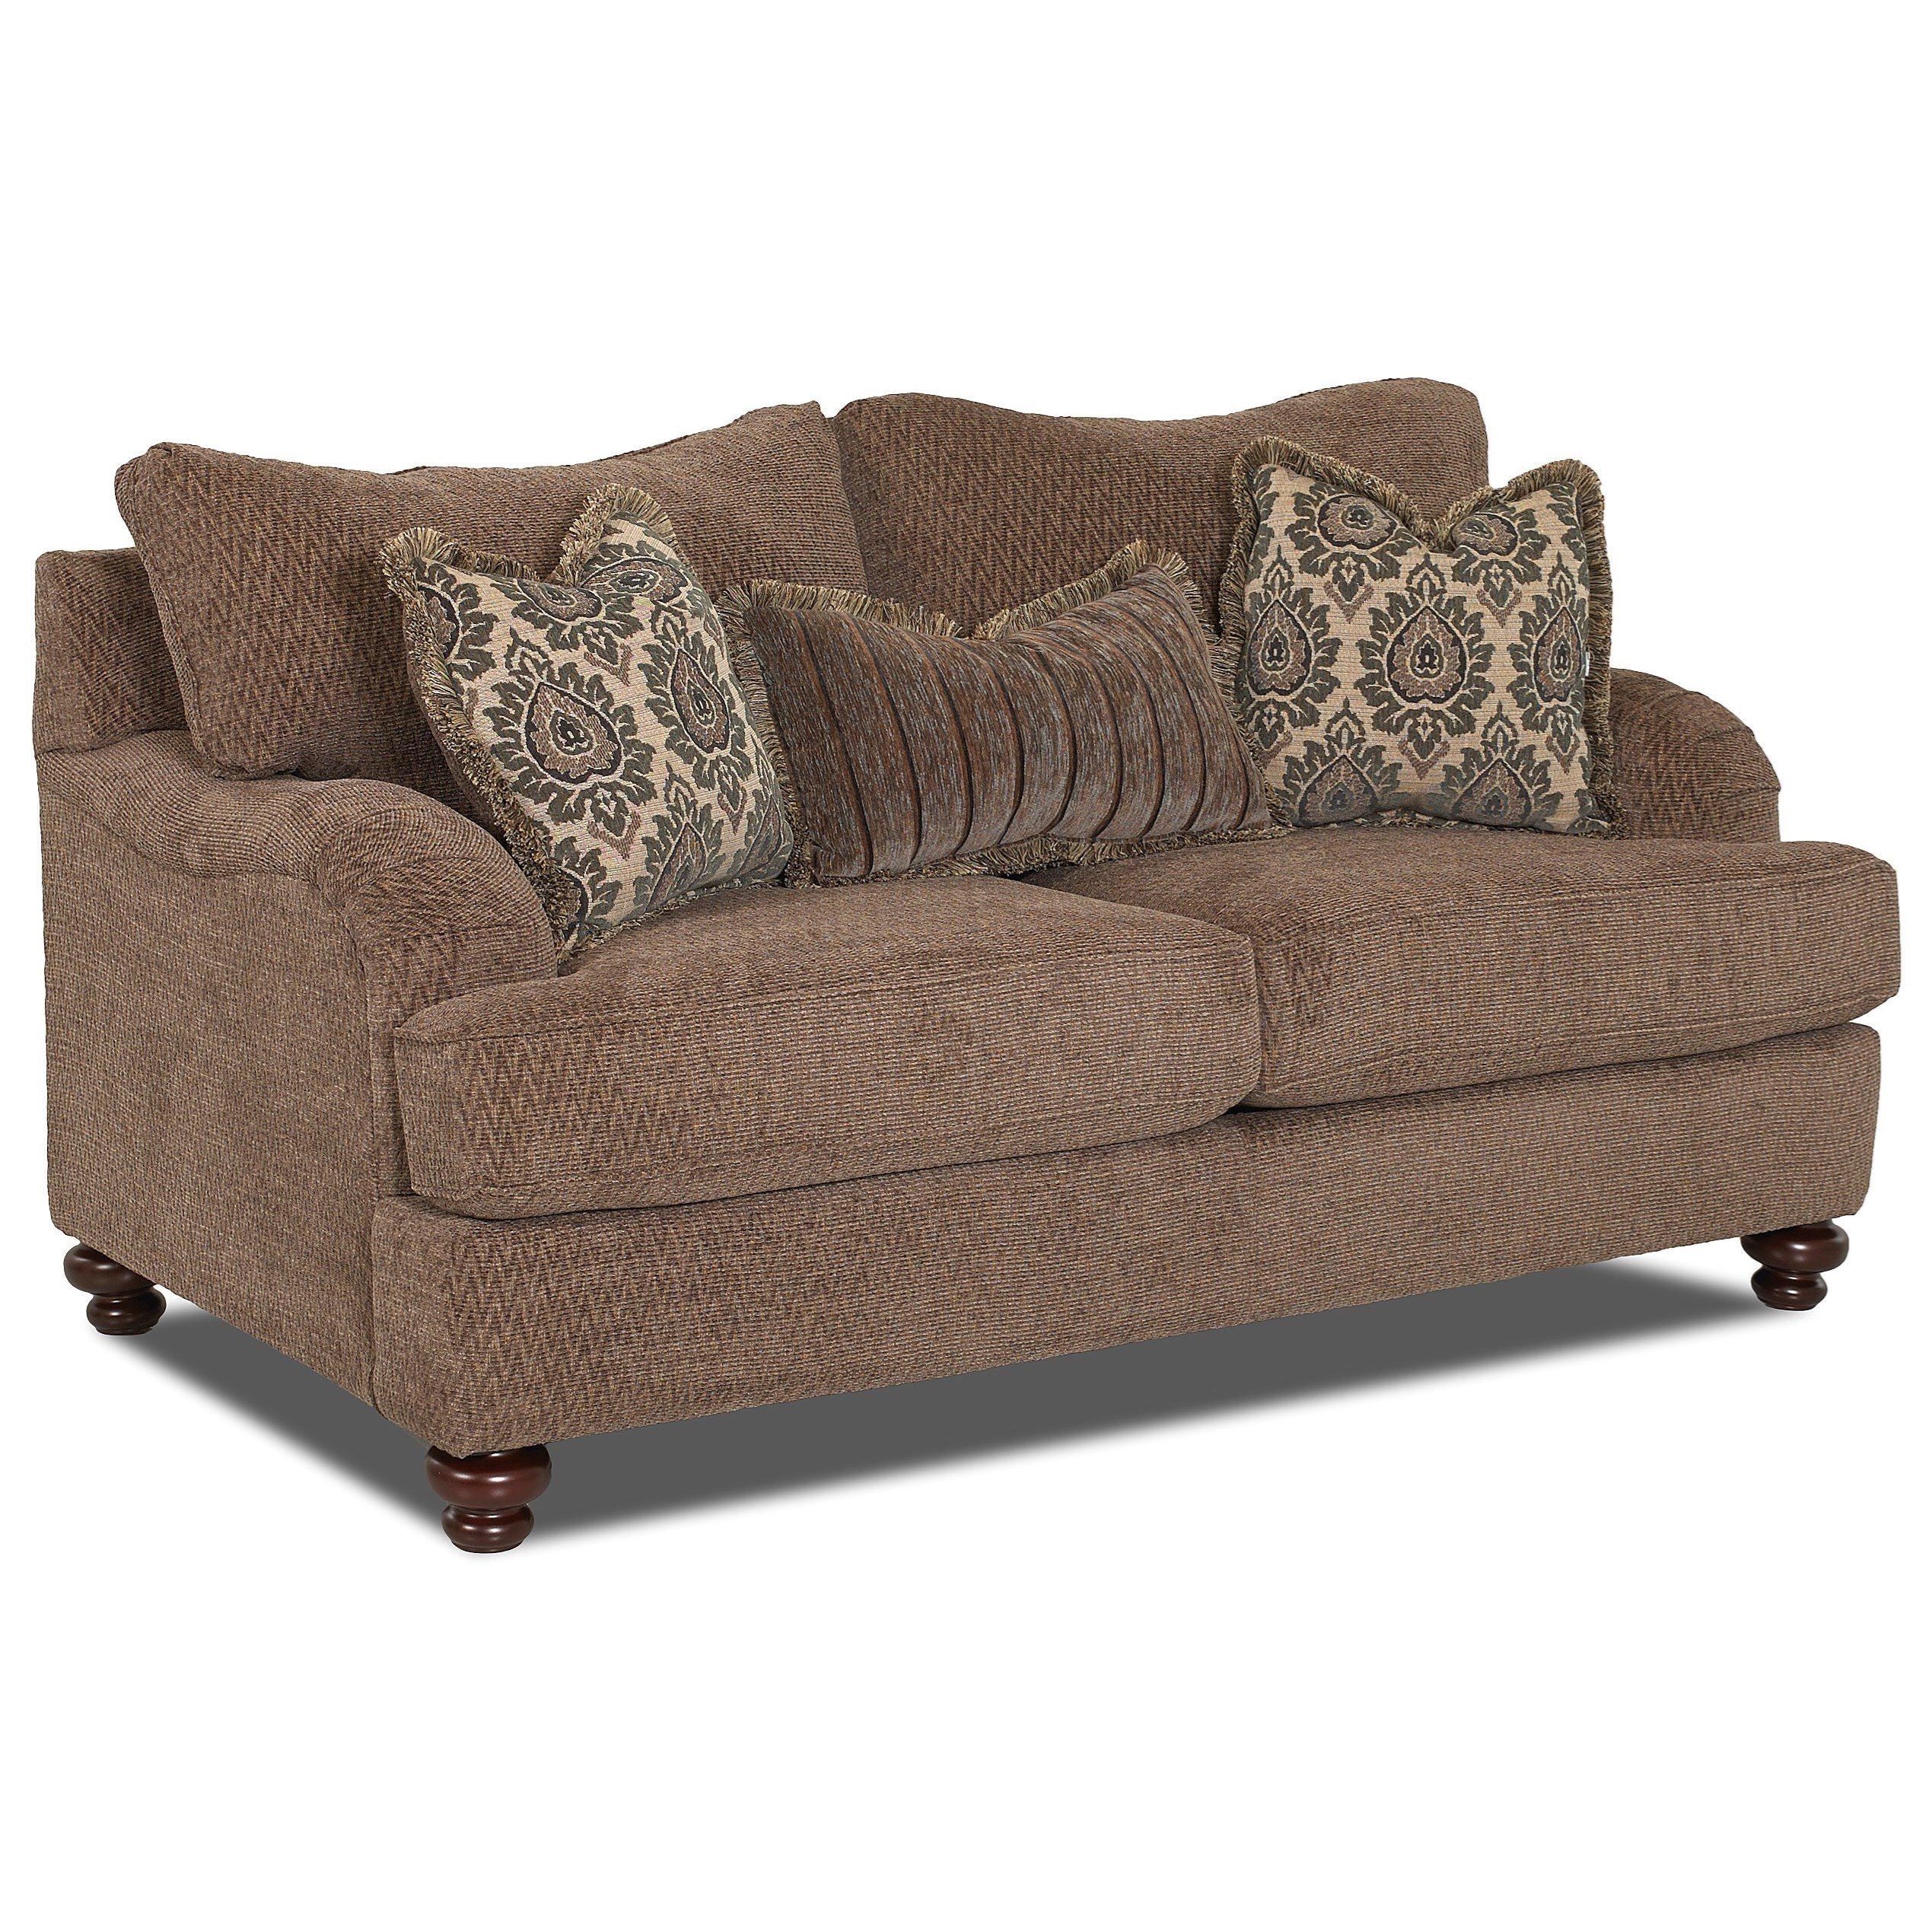 Klaussner declan traditional loveseat with english arms for Living room zumba